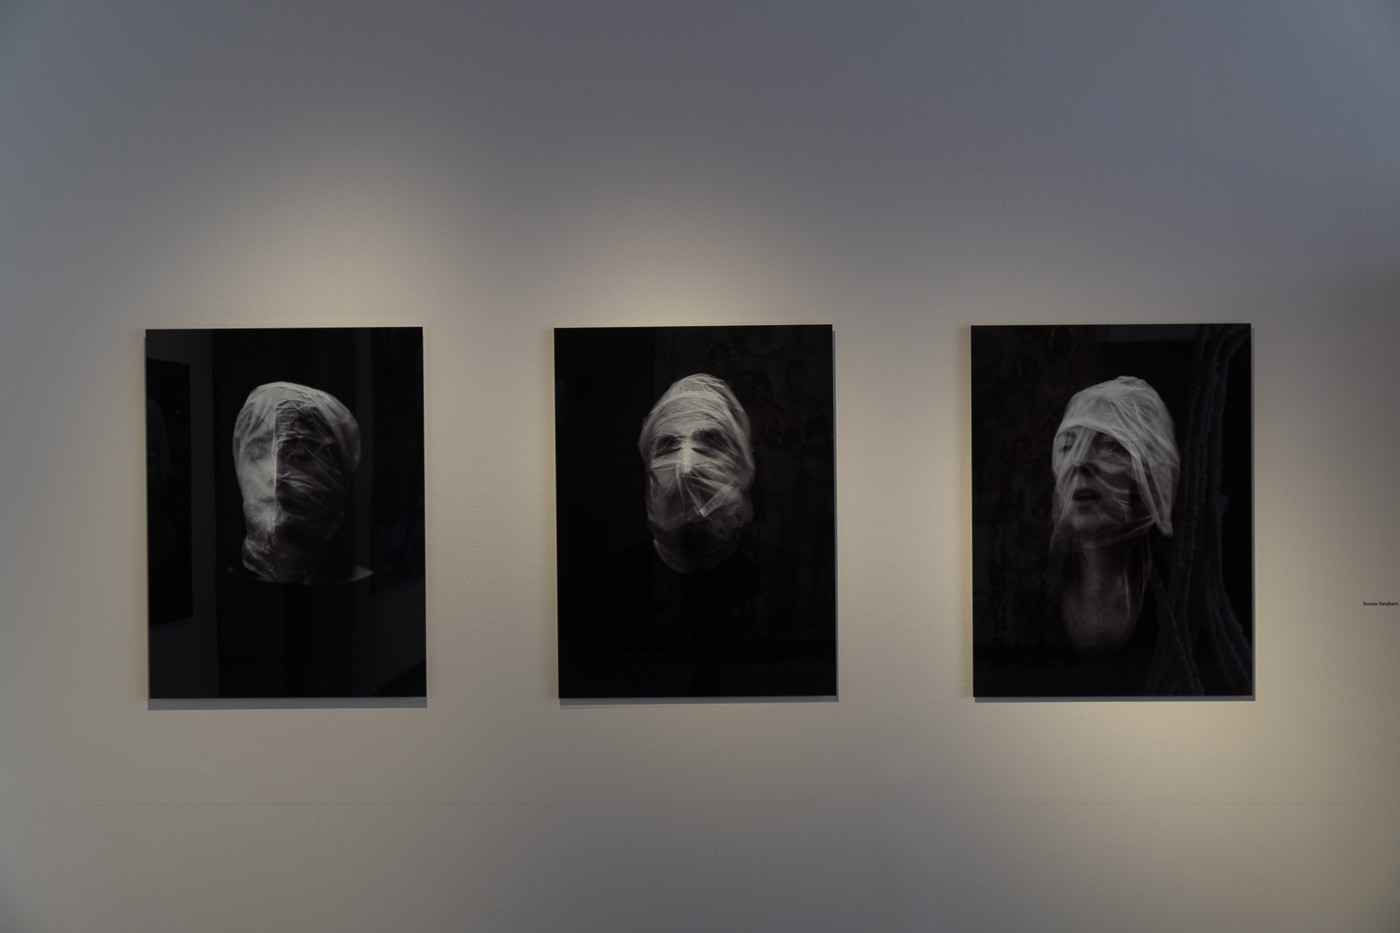 photographs at an exhibition in Venice